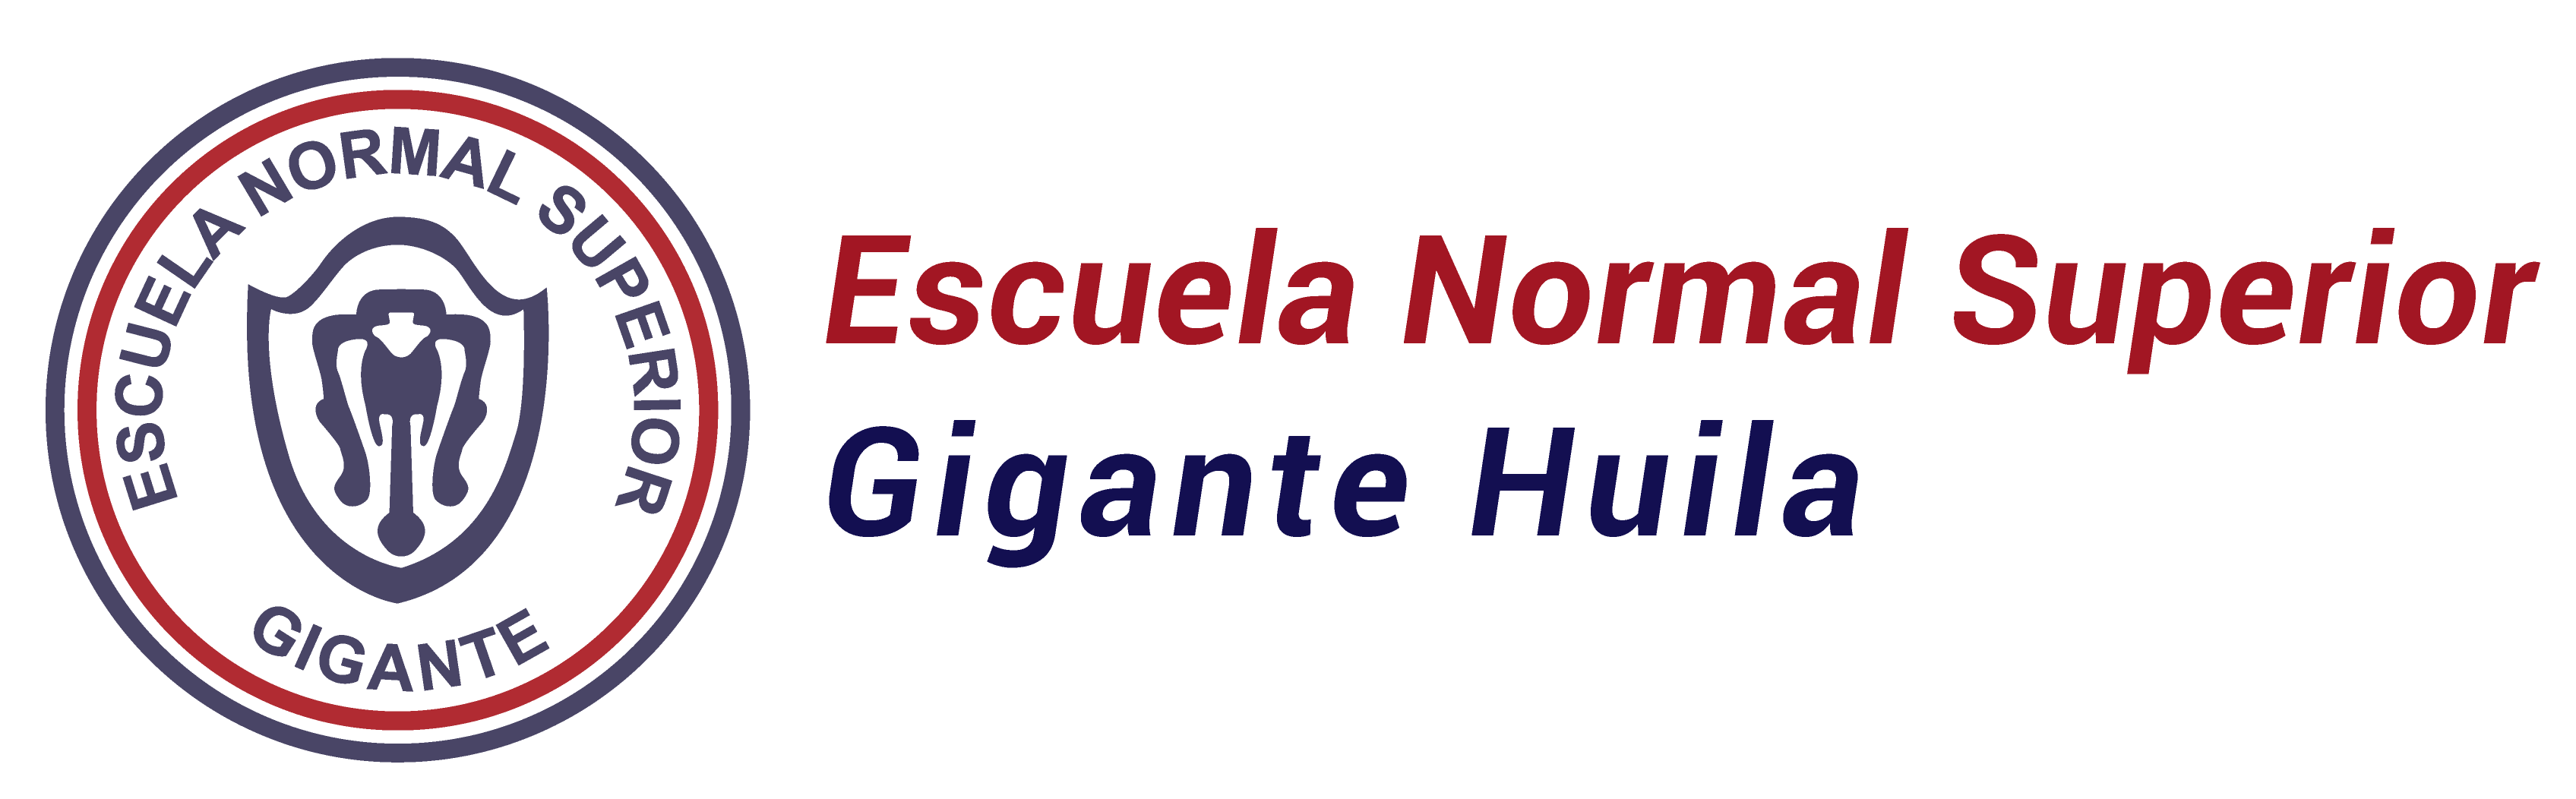 Escuela Normal Superior Gigante Huila